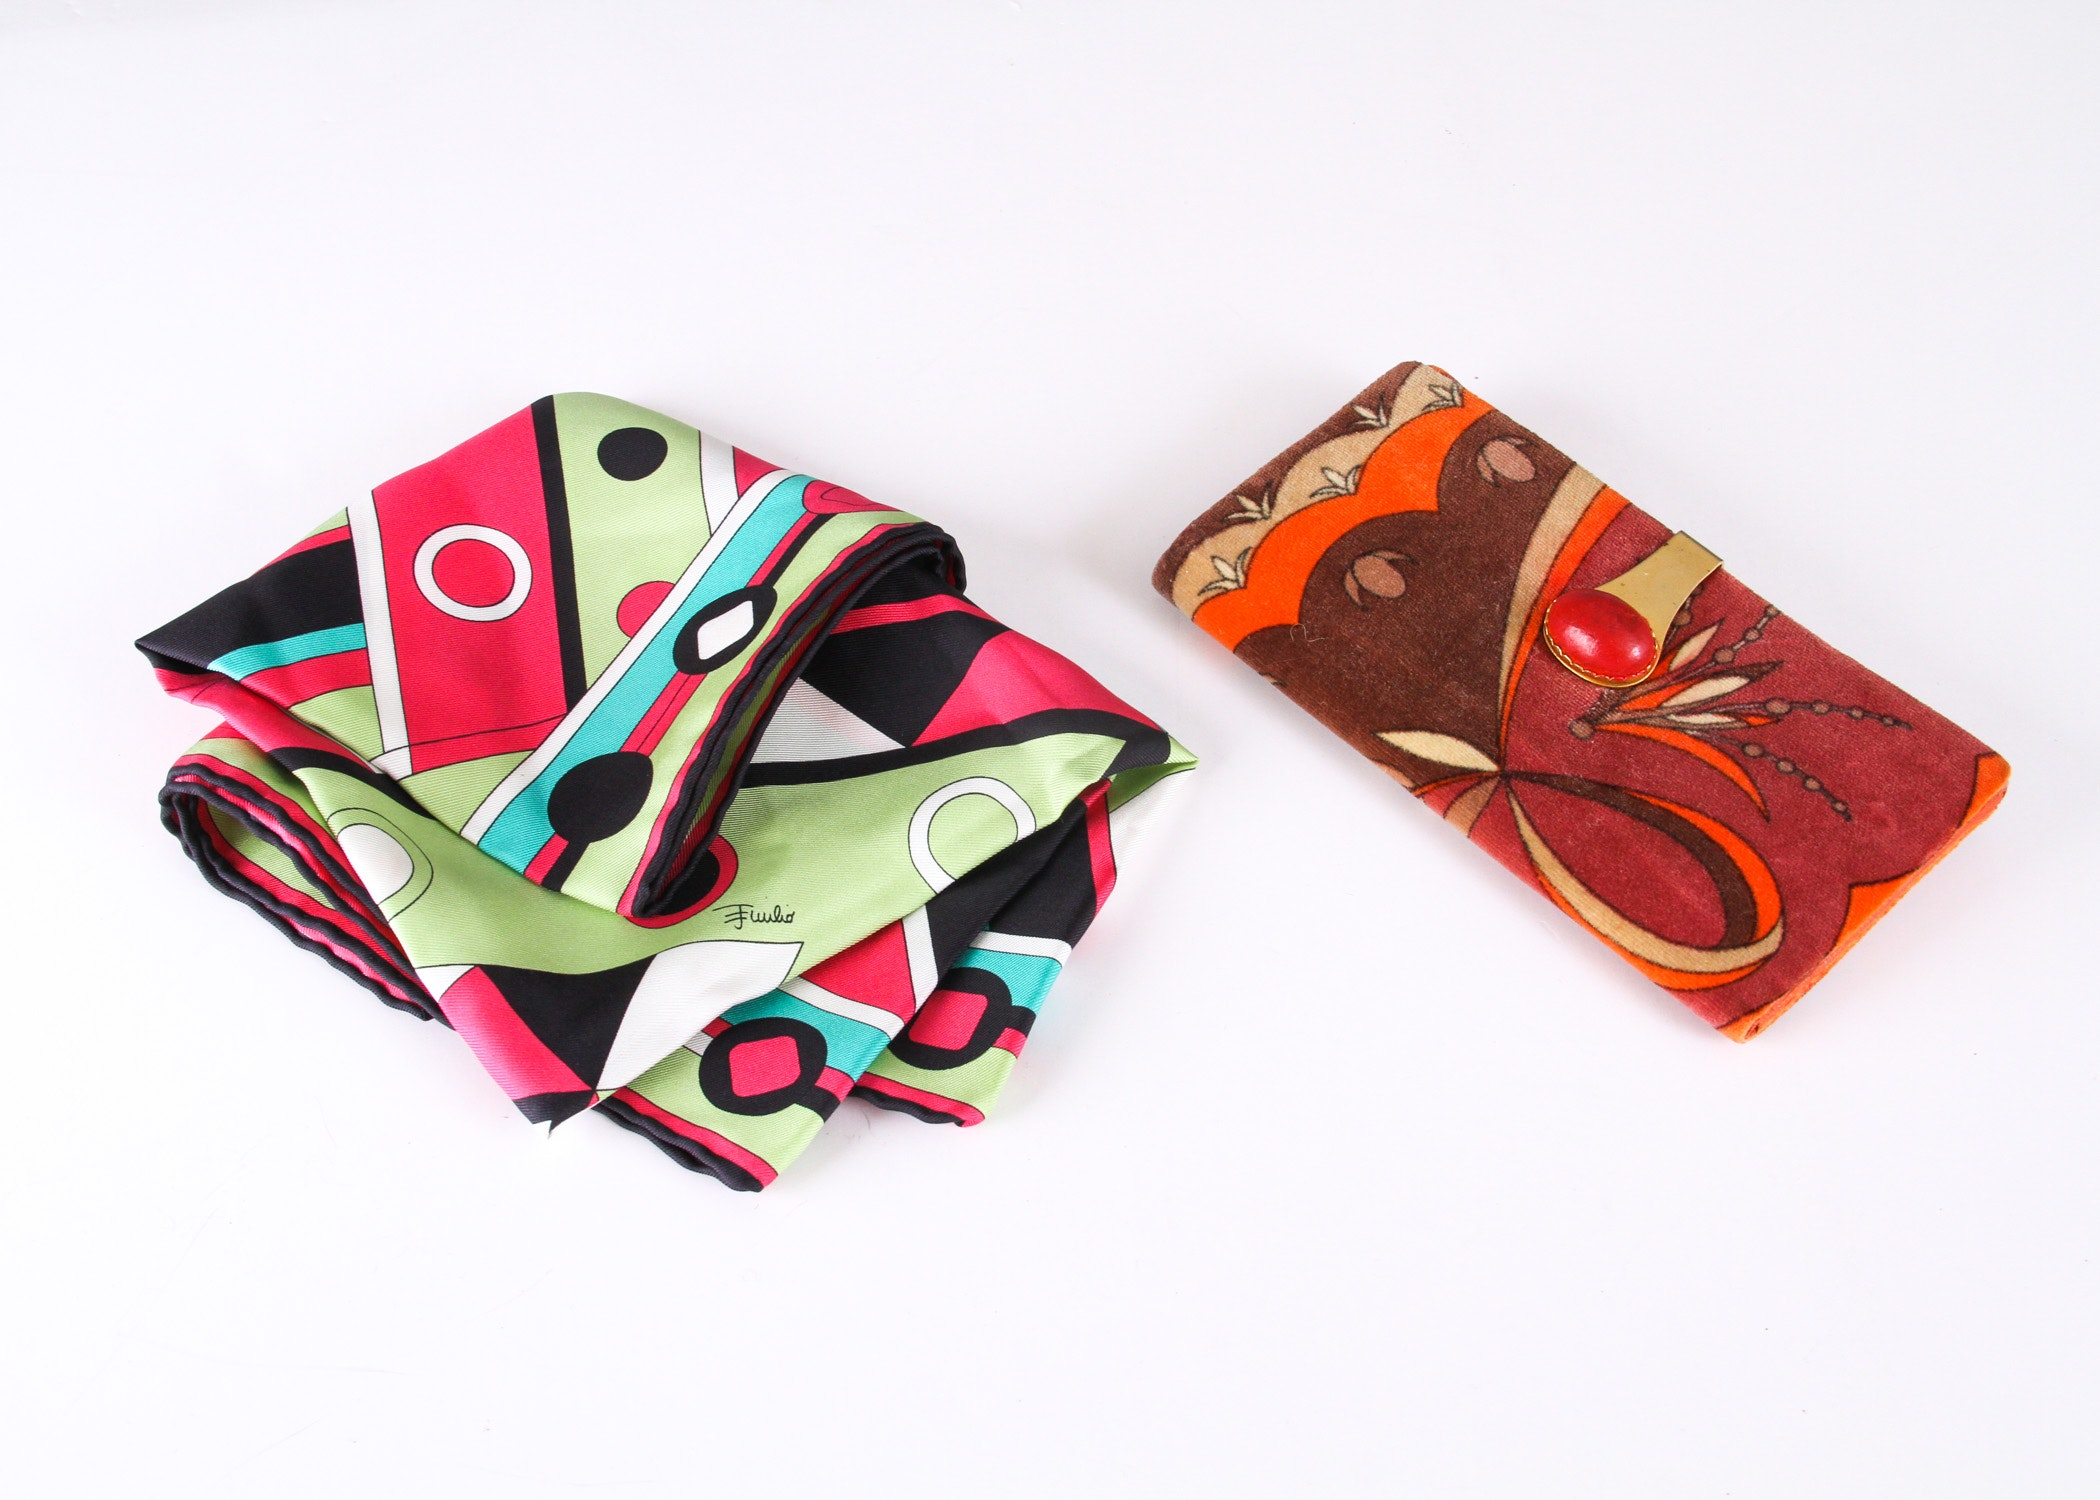 Emilio Pucci Scarf and Wallet Accessories